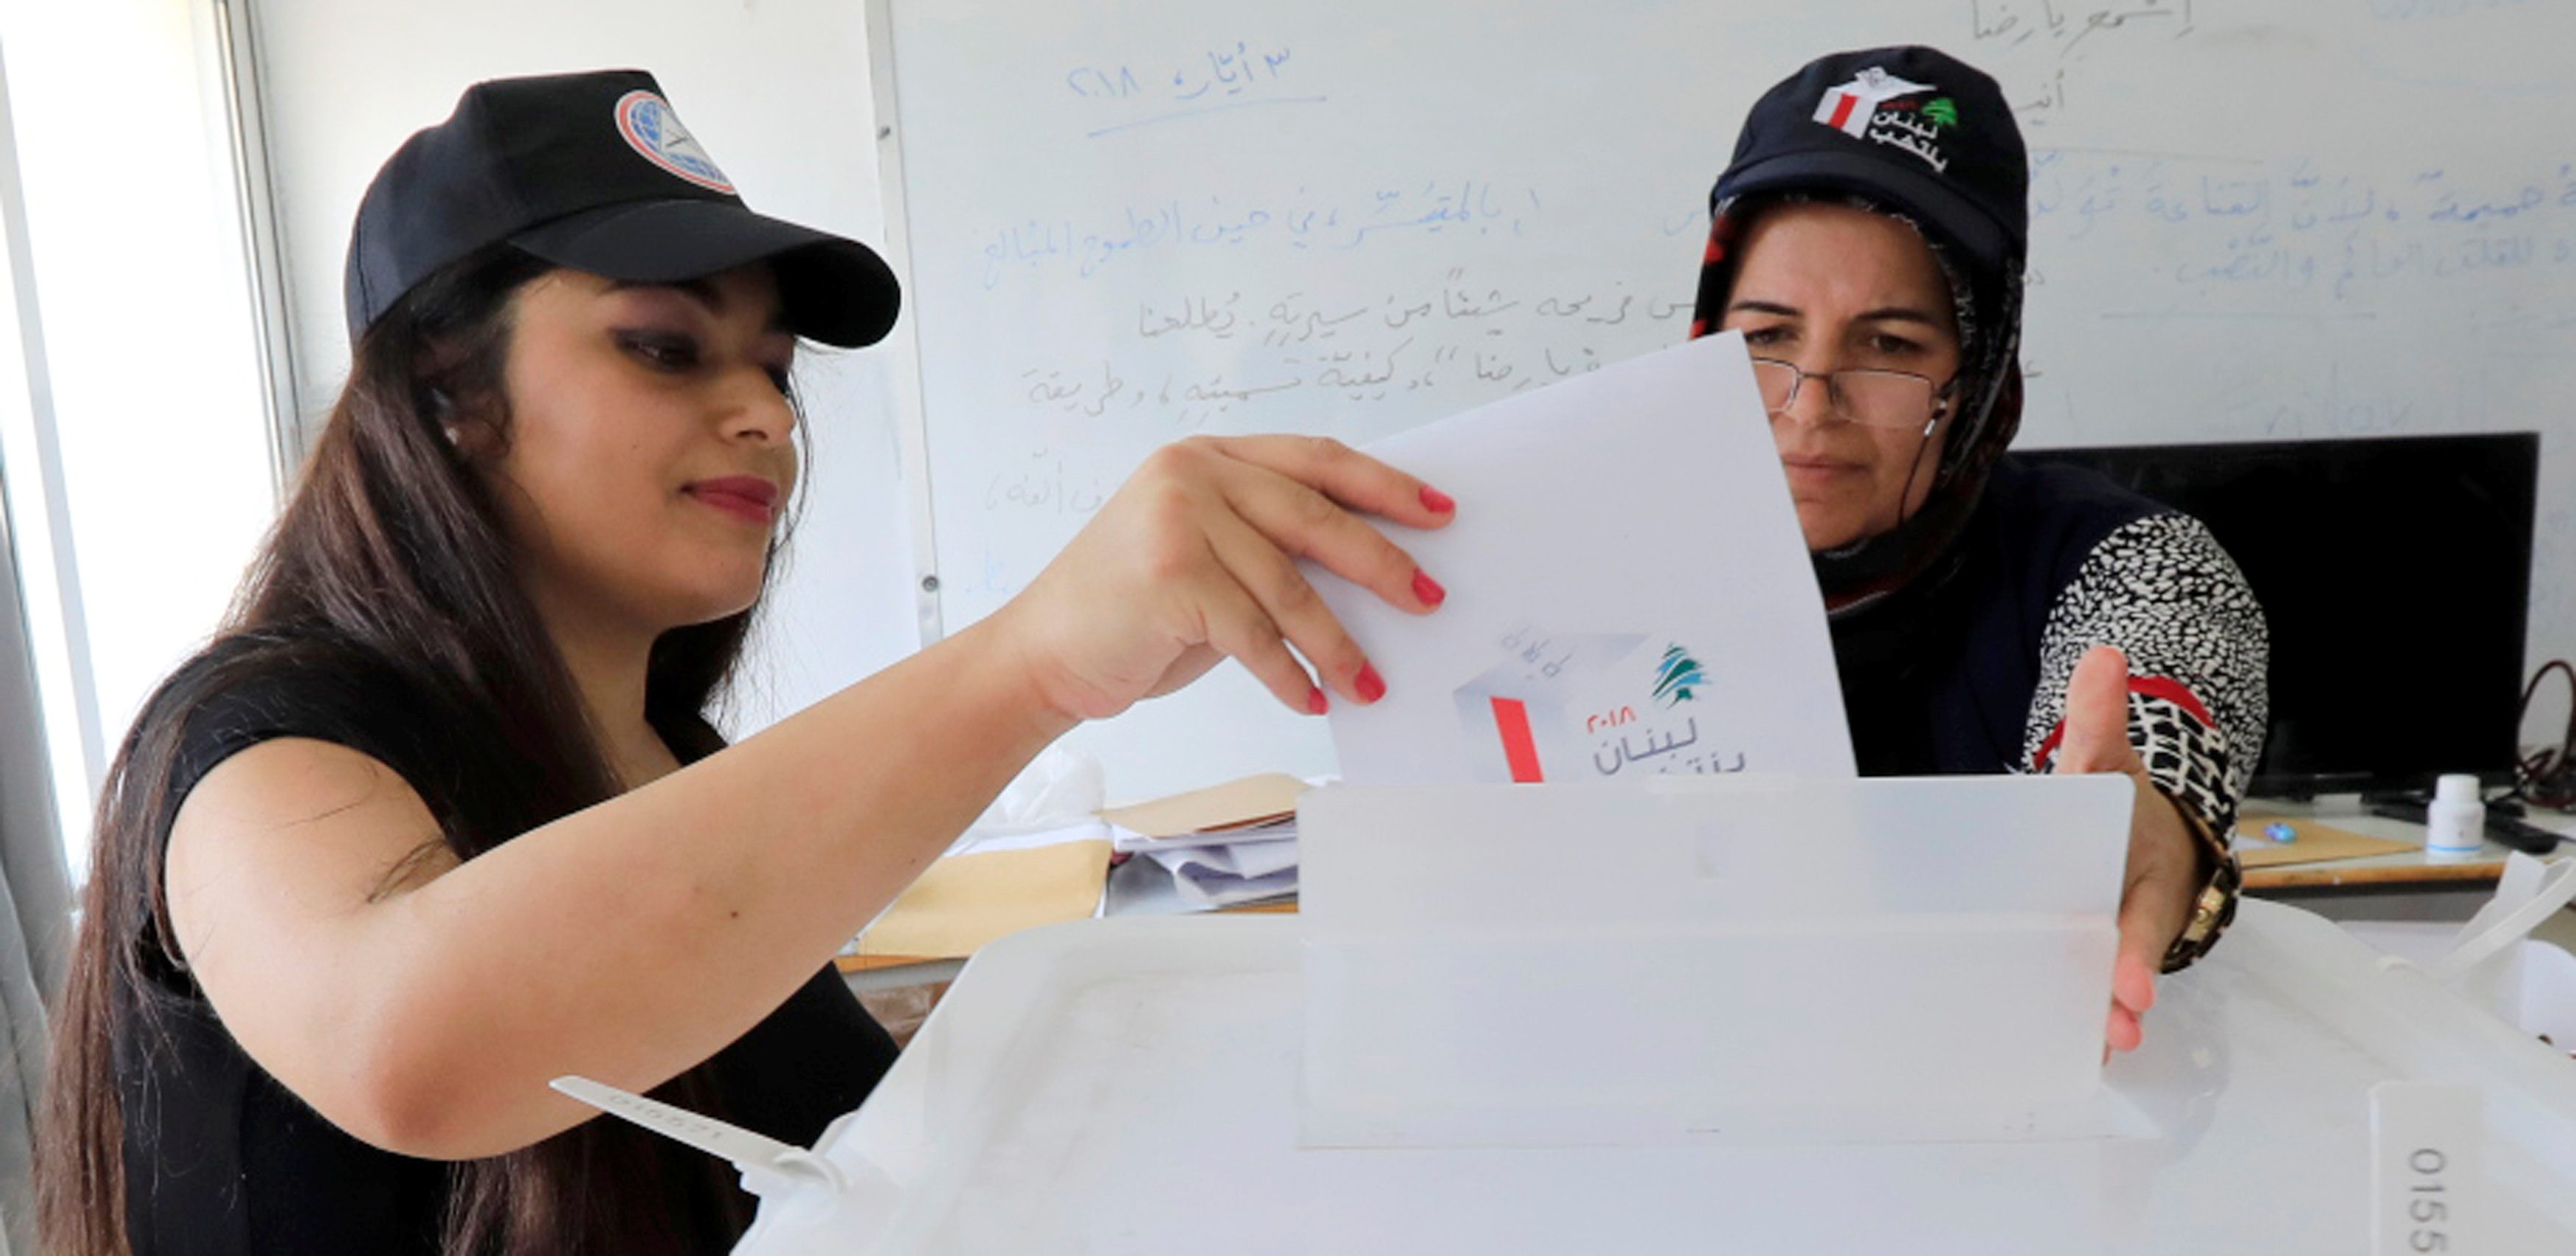 A woman casts her vote at a polling station during the parliamentary election, in Aley, Lebanon, May 6, 2018. REUTERS/ Jamal Saidi - RC1D4073C030